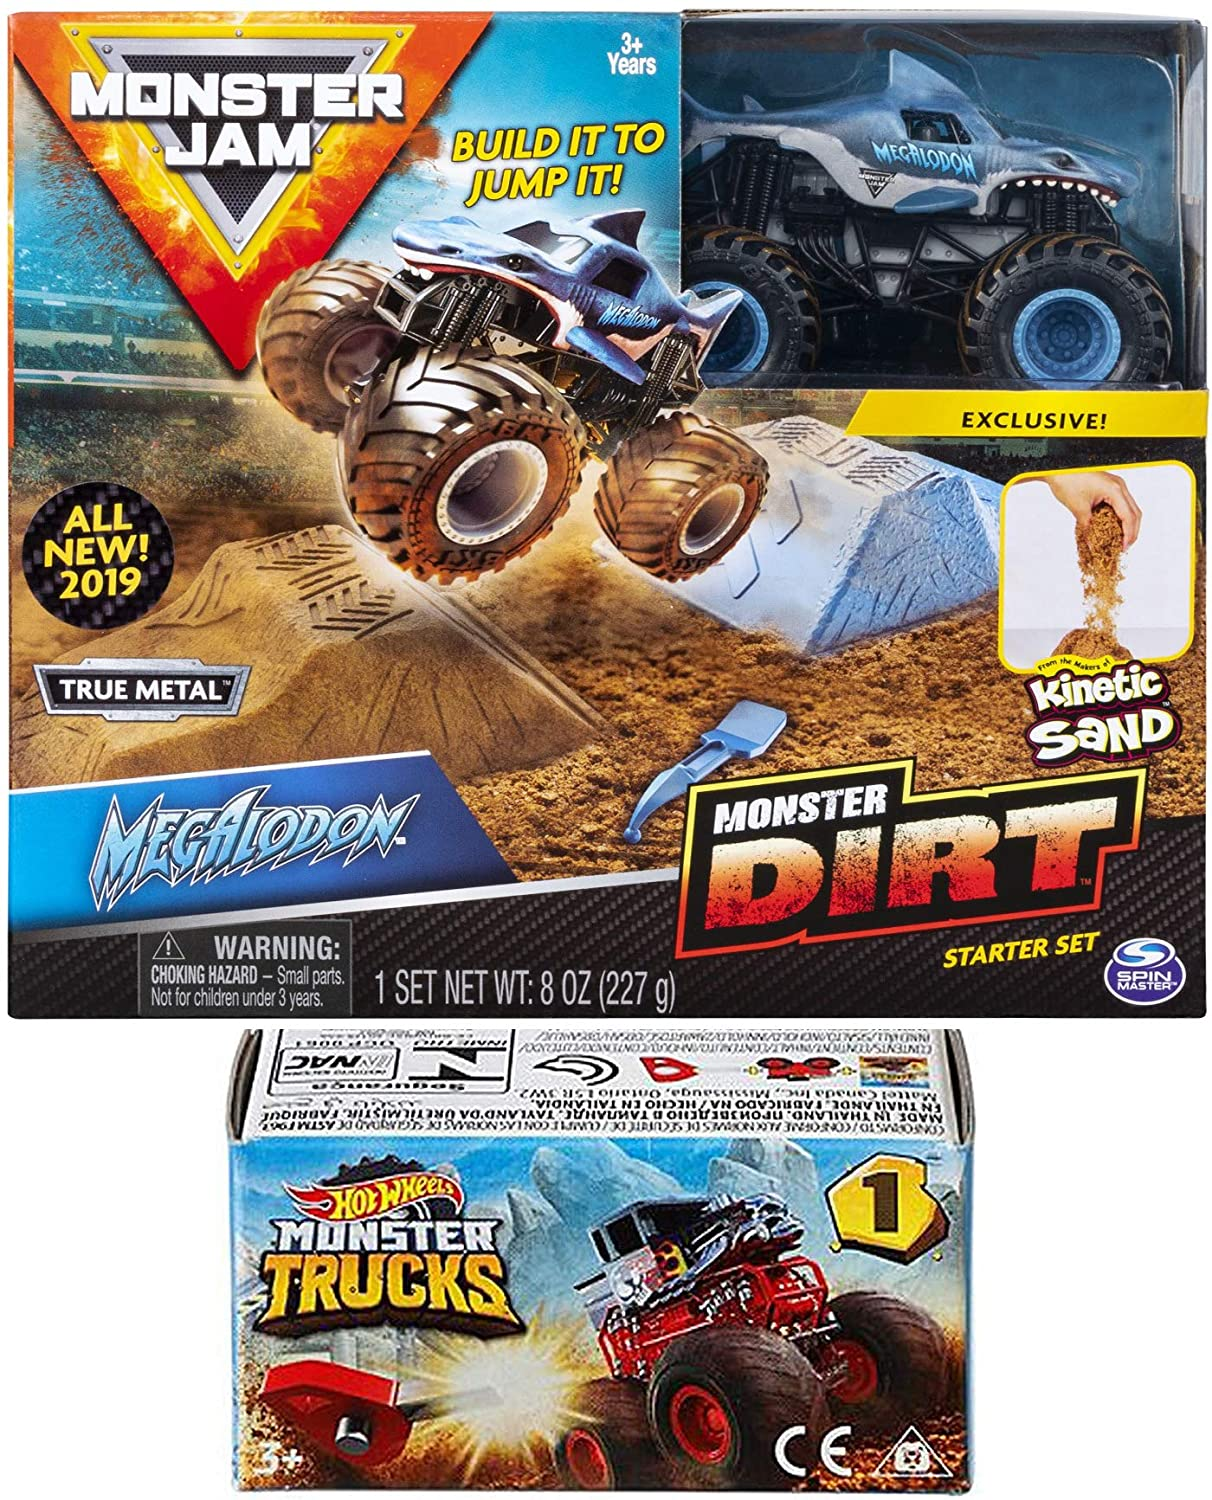 Dirt Crew Monster Jam Kit Action 2019 Megalodon Shark Truck and Sand + Hot Wheels Blind Box Series Mini Monster Truck with Launcher